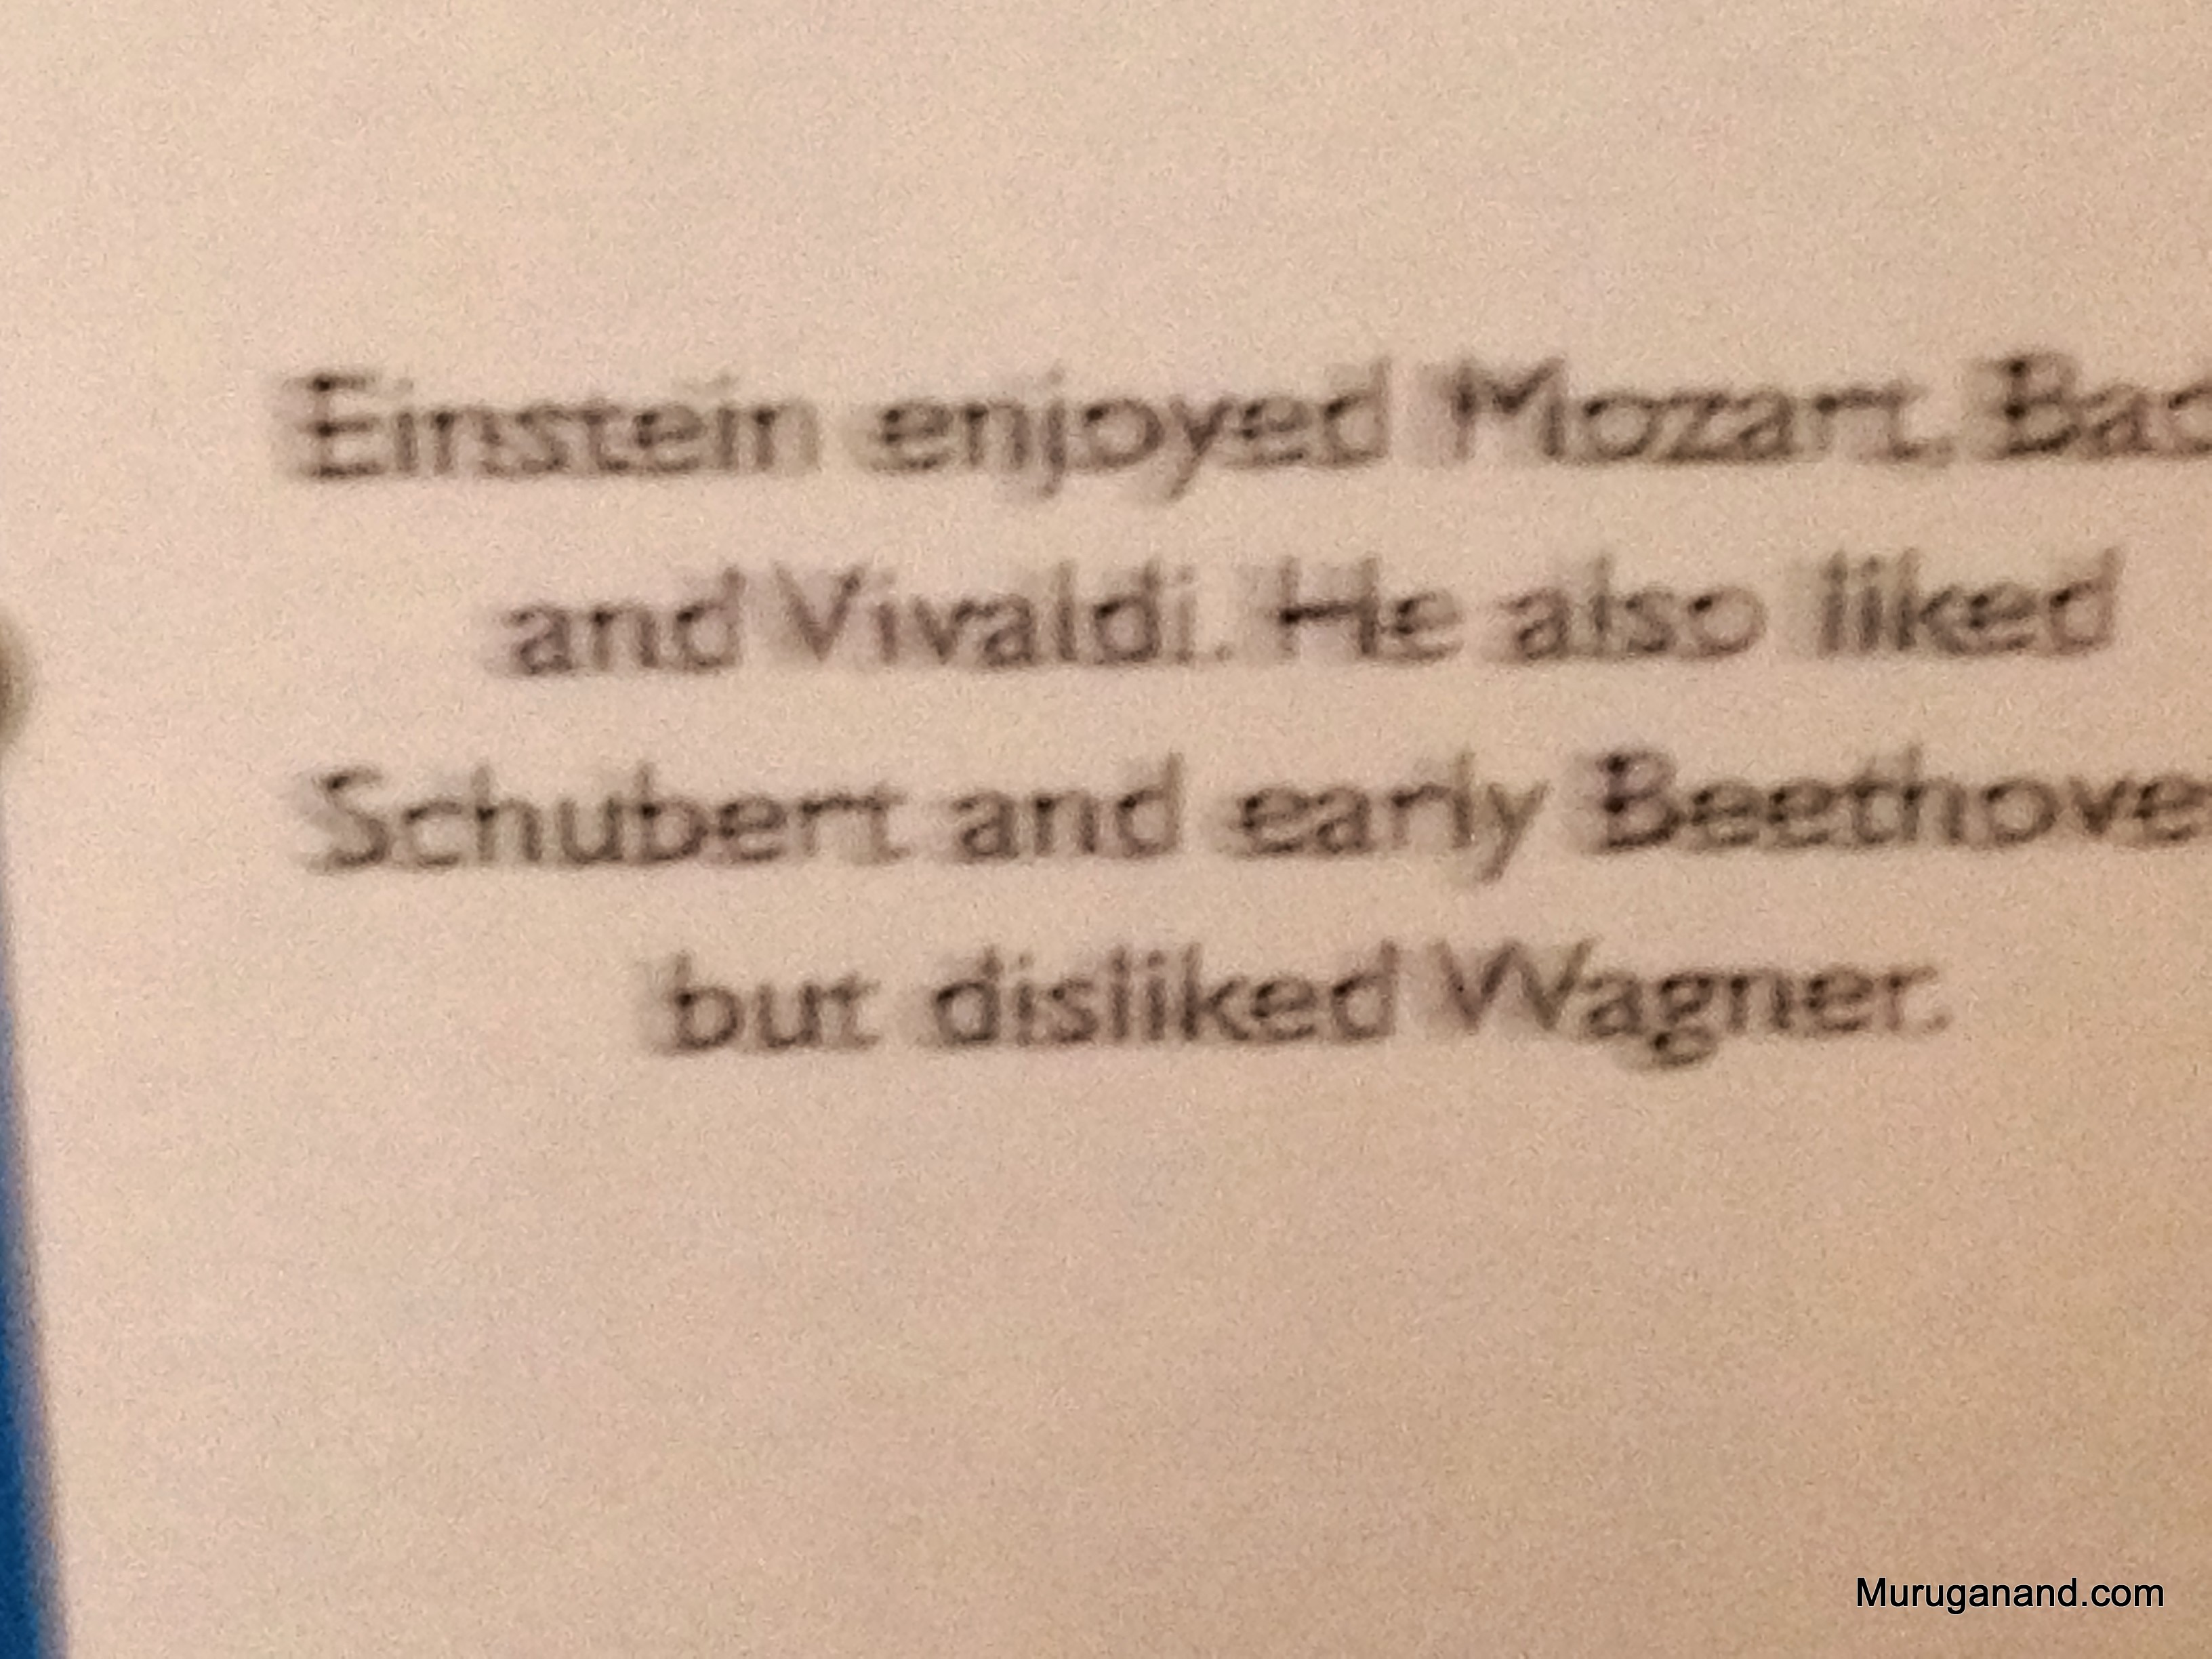 Mozart yes; Wagner no